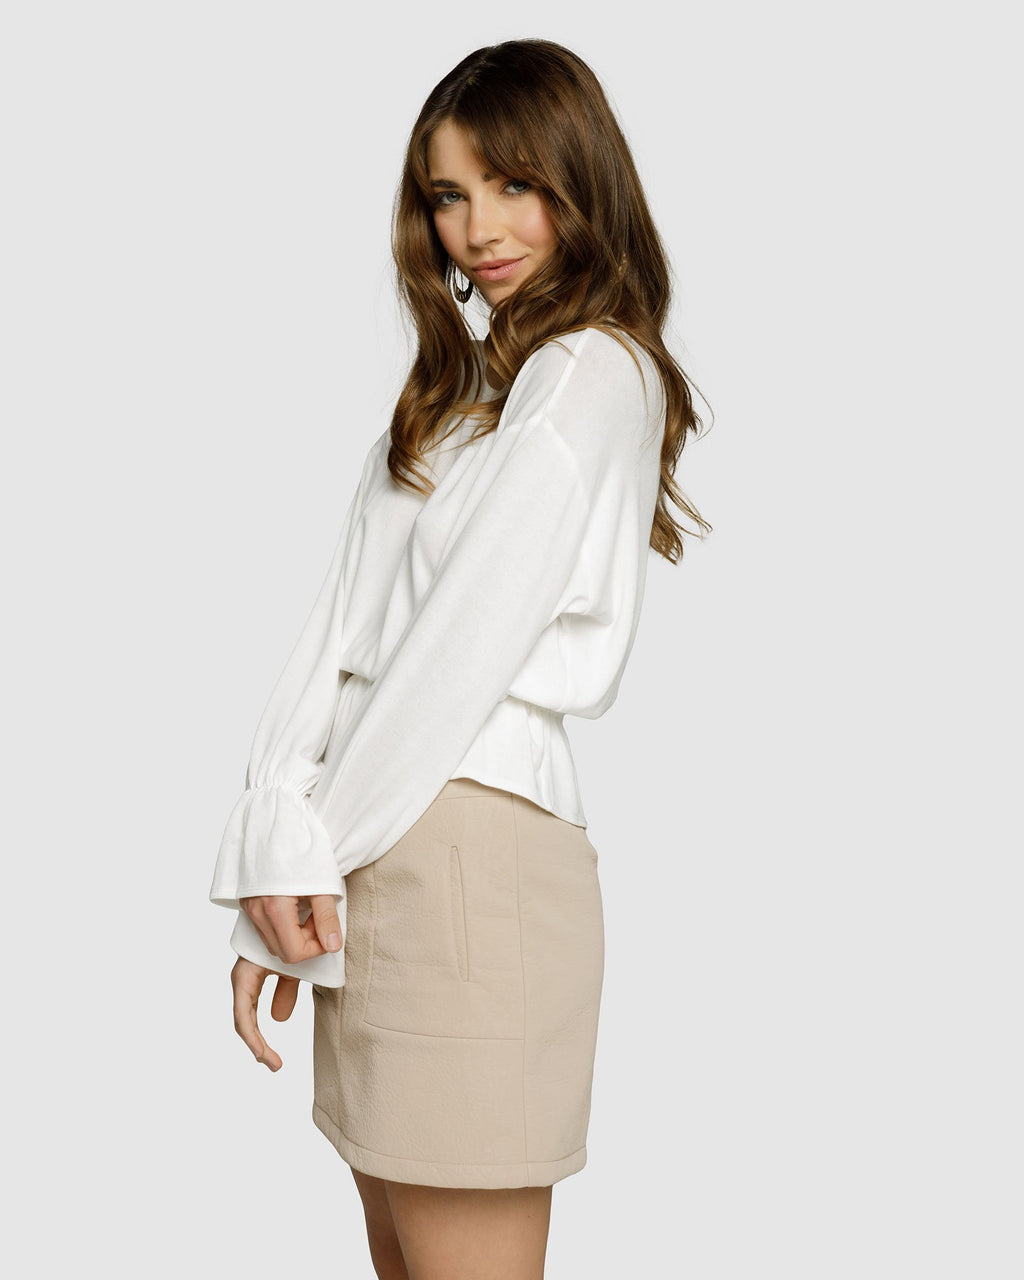 Dawn Long Sleeve Frill Top - Off White